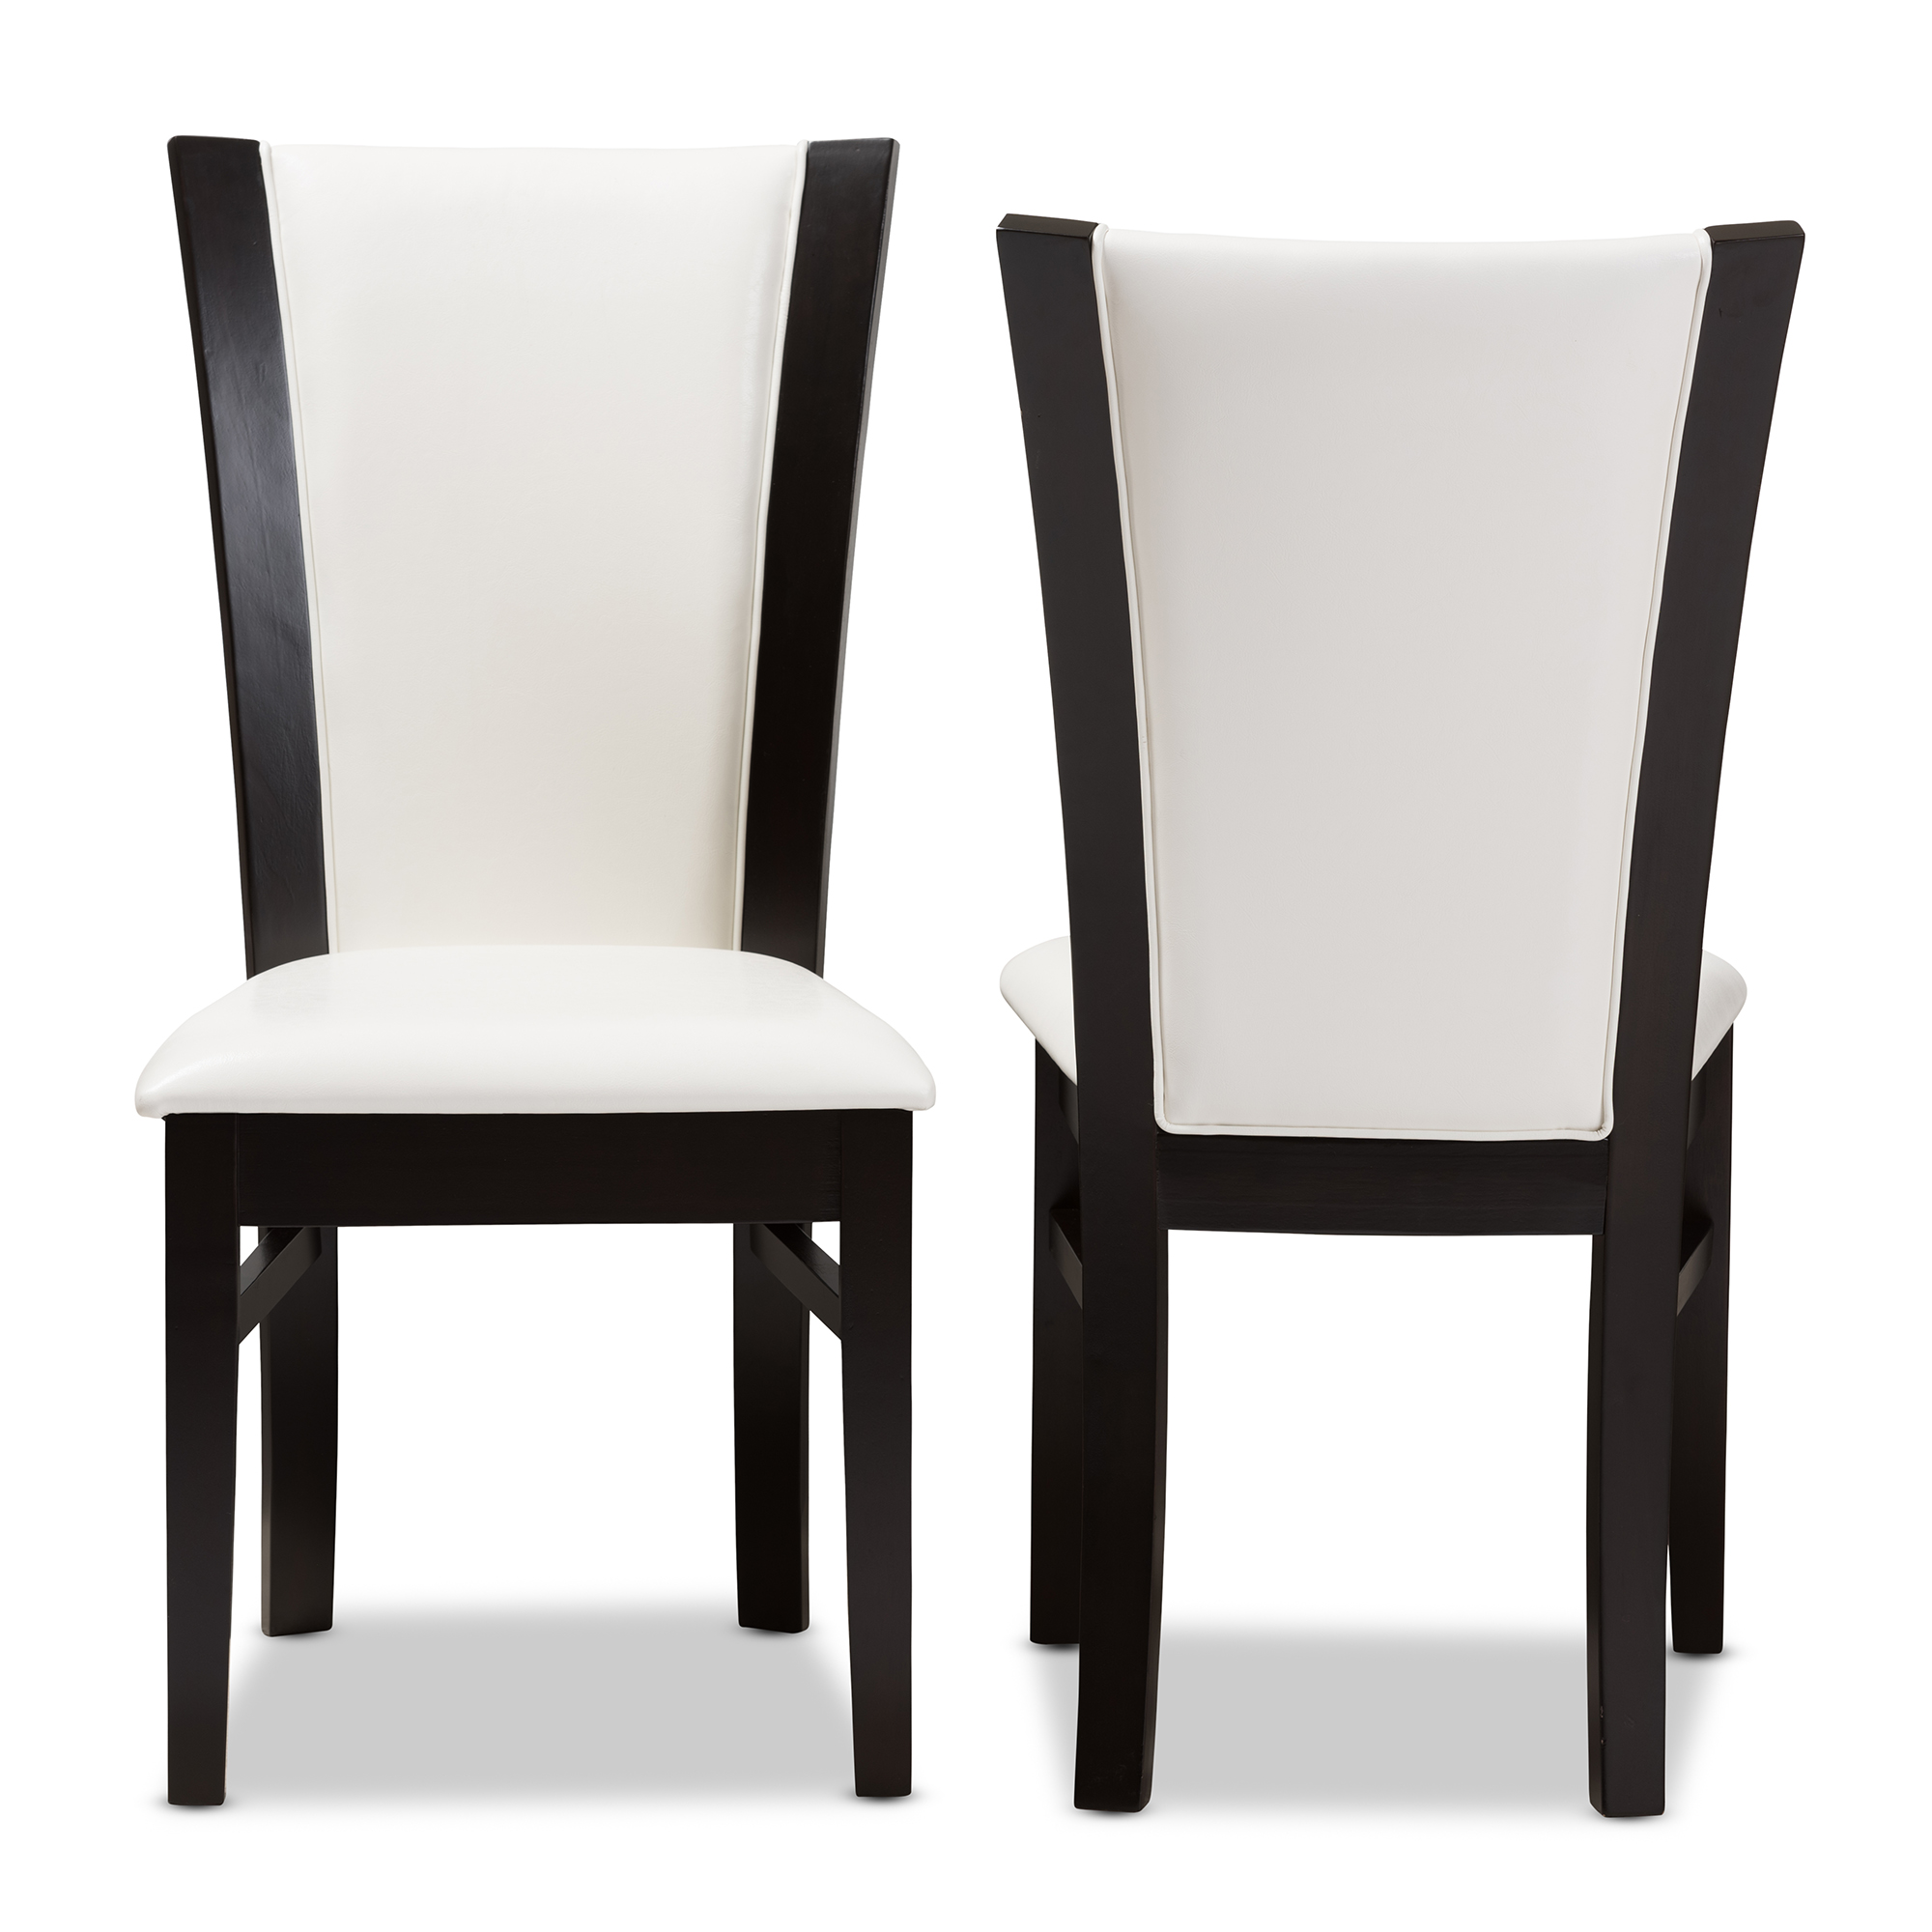 Black Leather Dining Chairs Baxton Studio Adley Modern And Contemporary Dark Brown Finished White Faux Leather Dining Chair Set Of 2